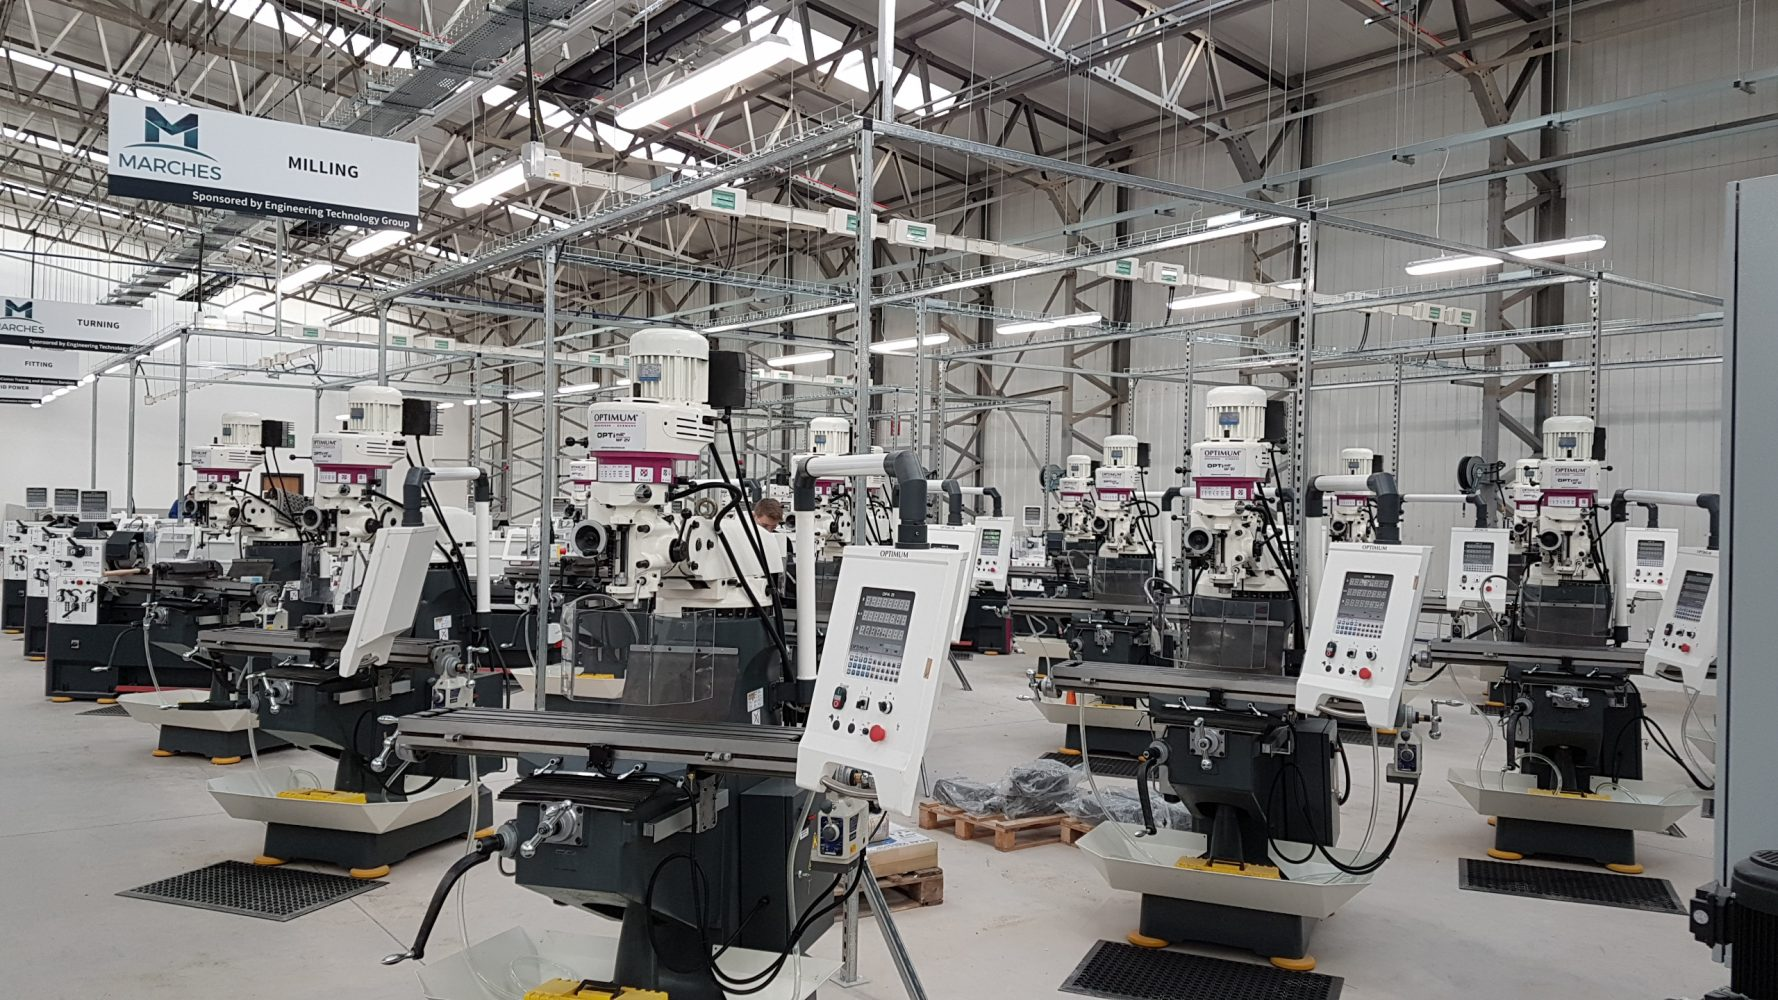 Marches Centre Of Manufacturing And Technology Cd